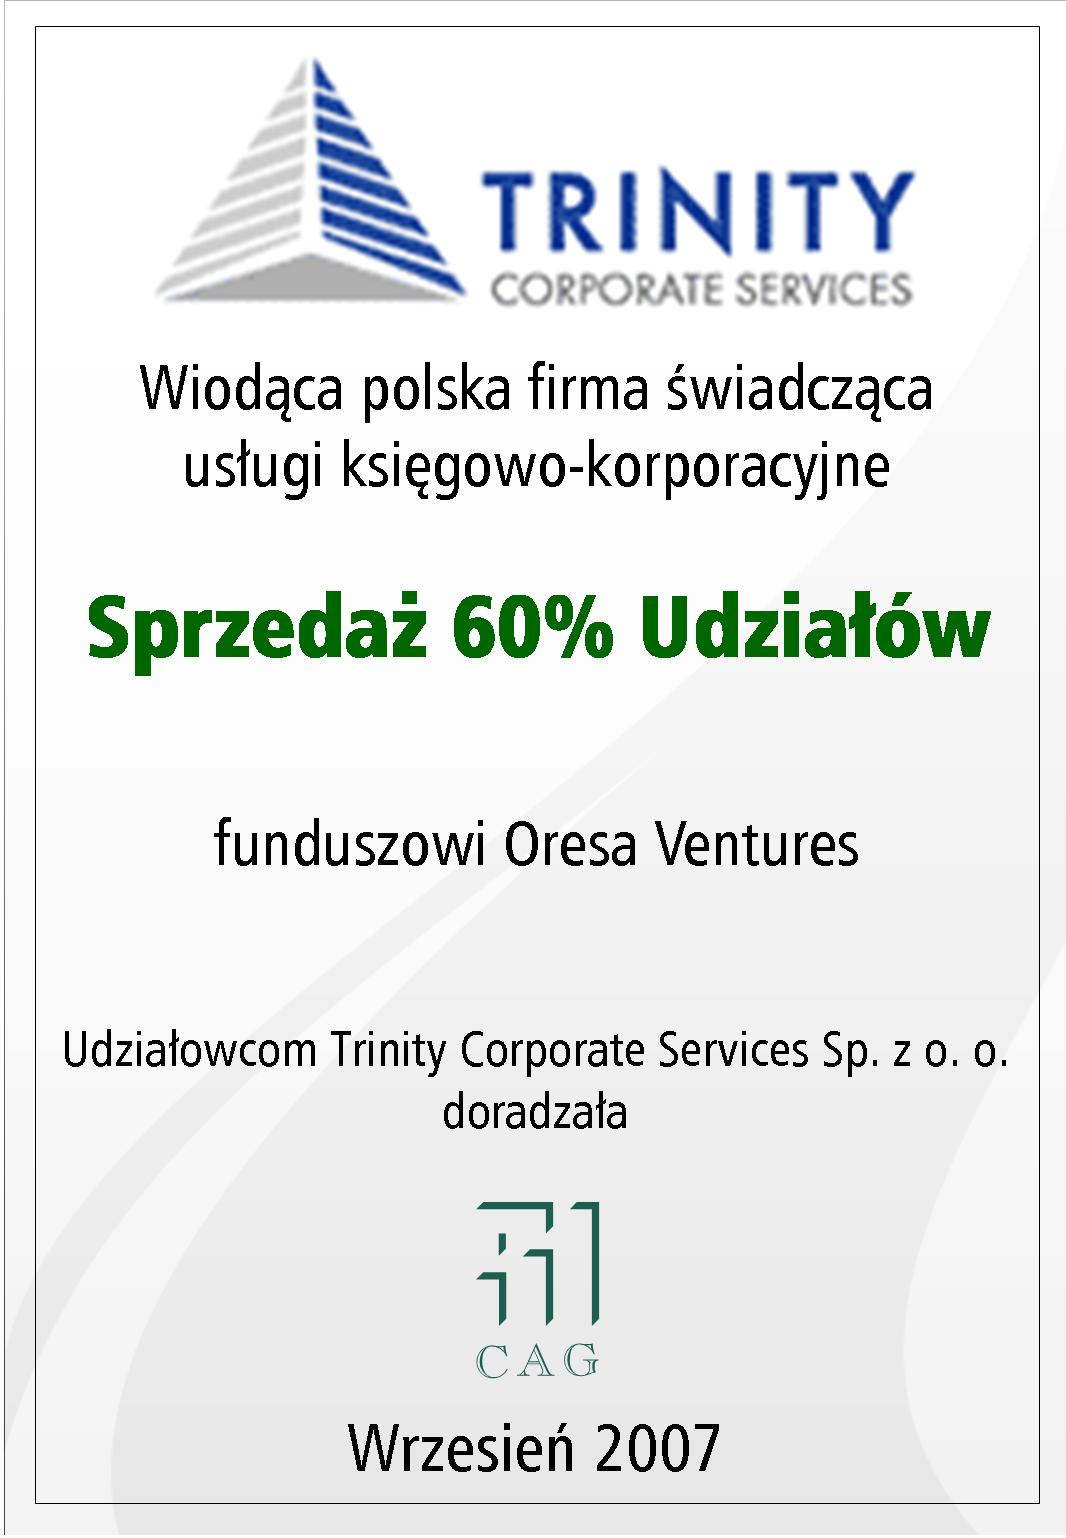 Trinity Corporate Services